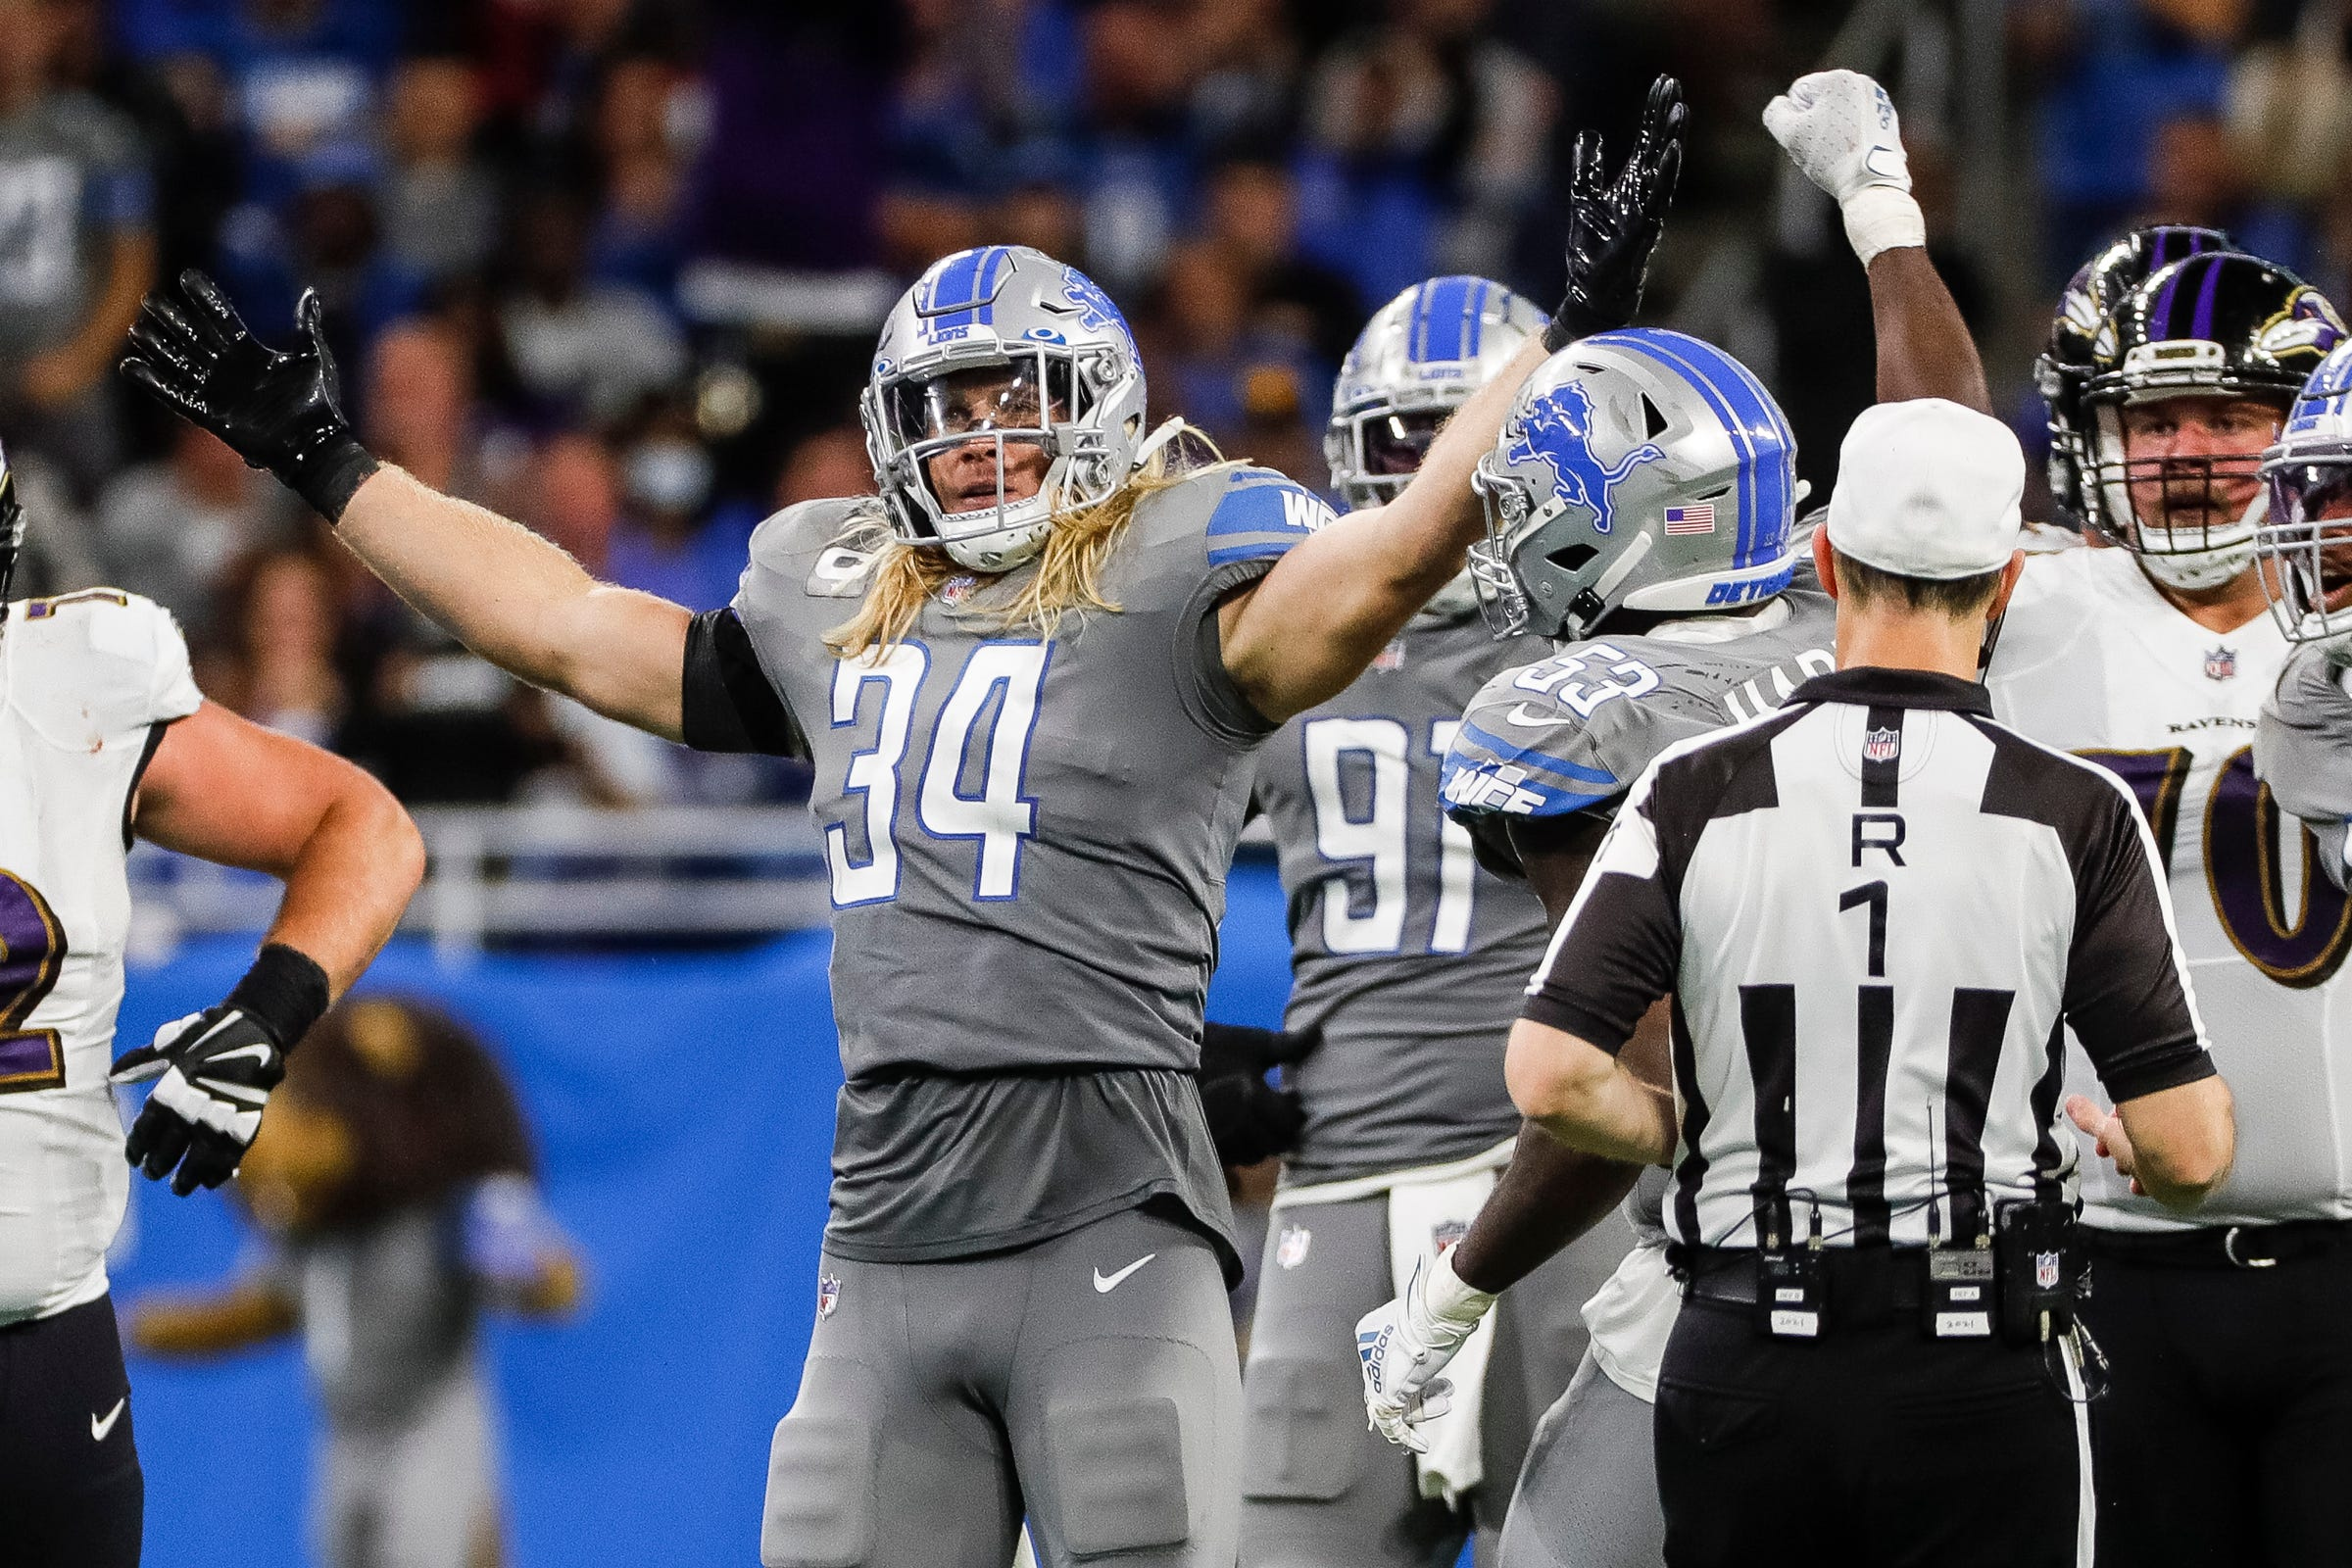 Detroit Lions predictions: Is this the week they get a win? Our writers make their picks